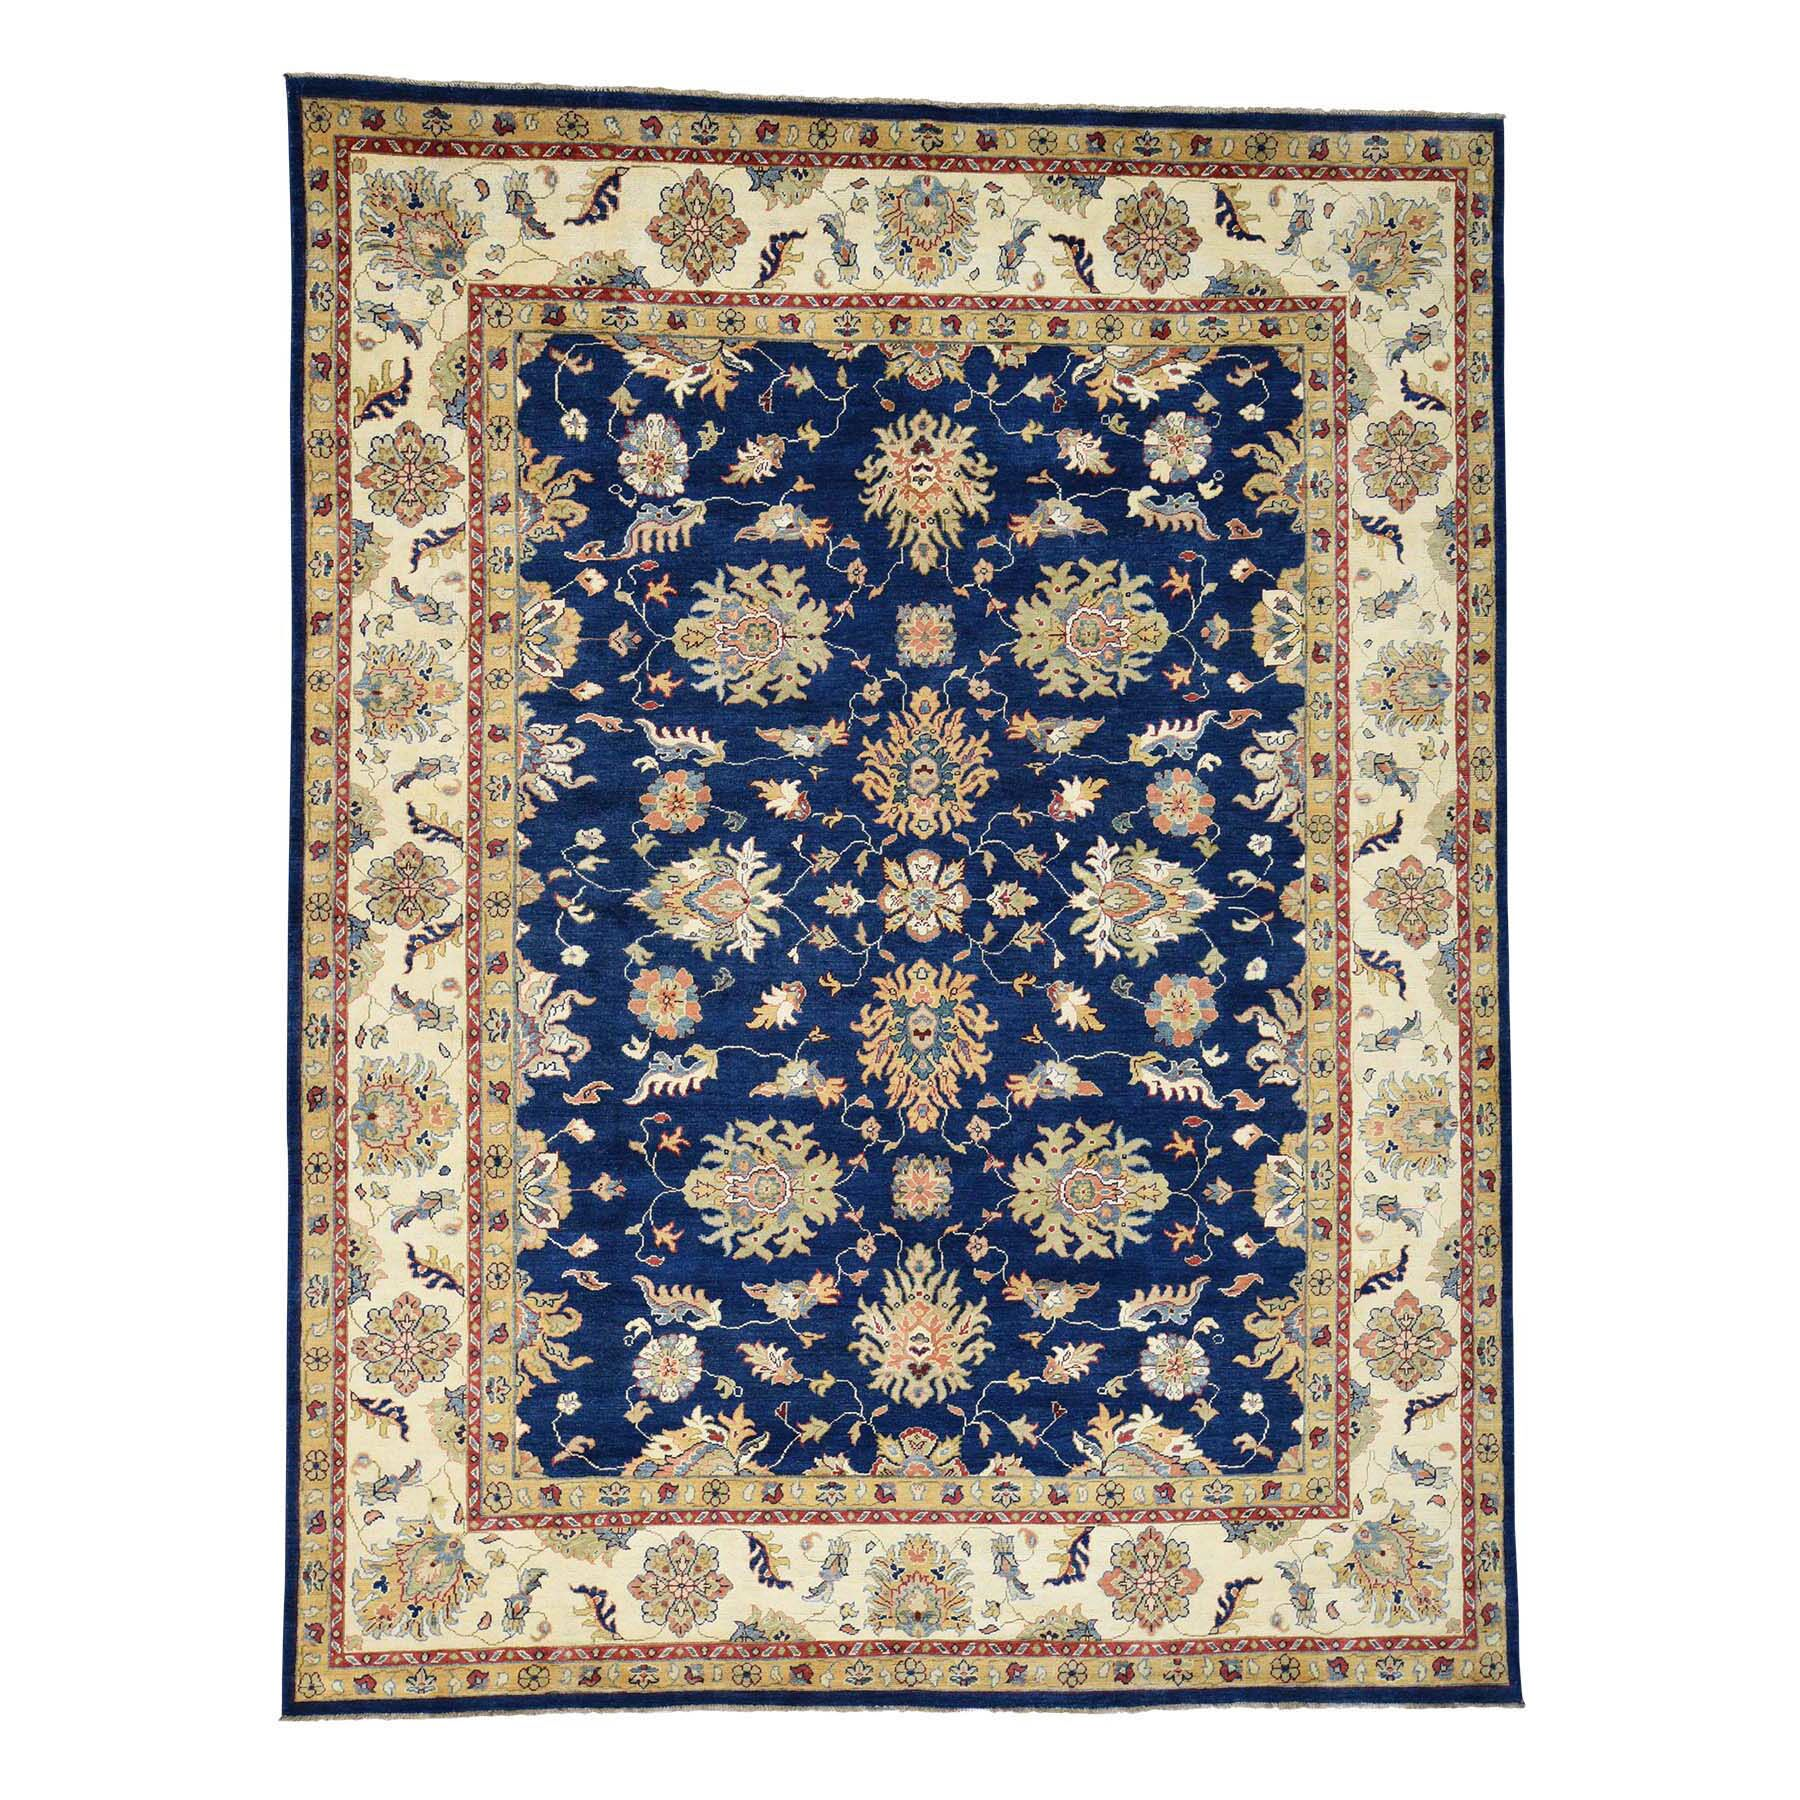 One-of-a-Kind Tillman Special Mahal Hand-Knotted Ivory/Navy Blue Area Rug